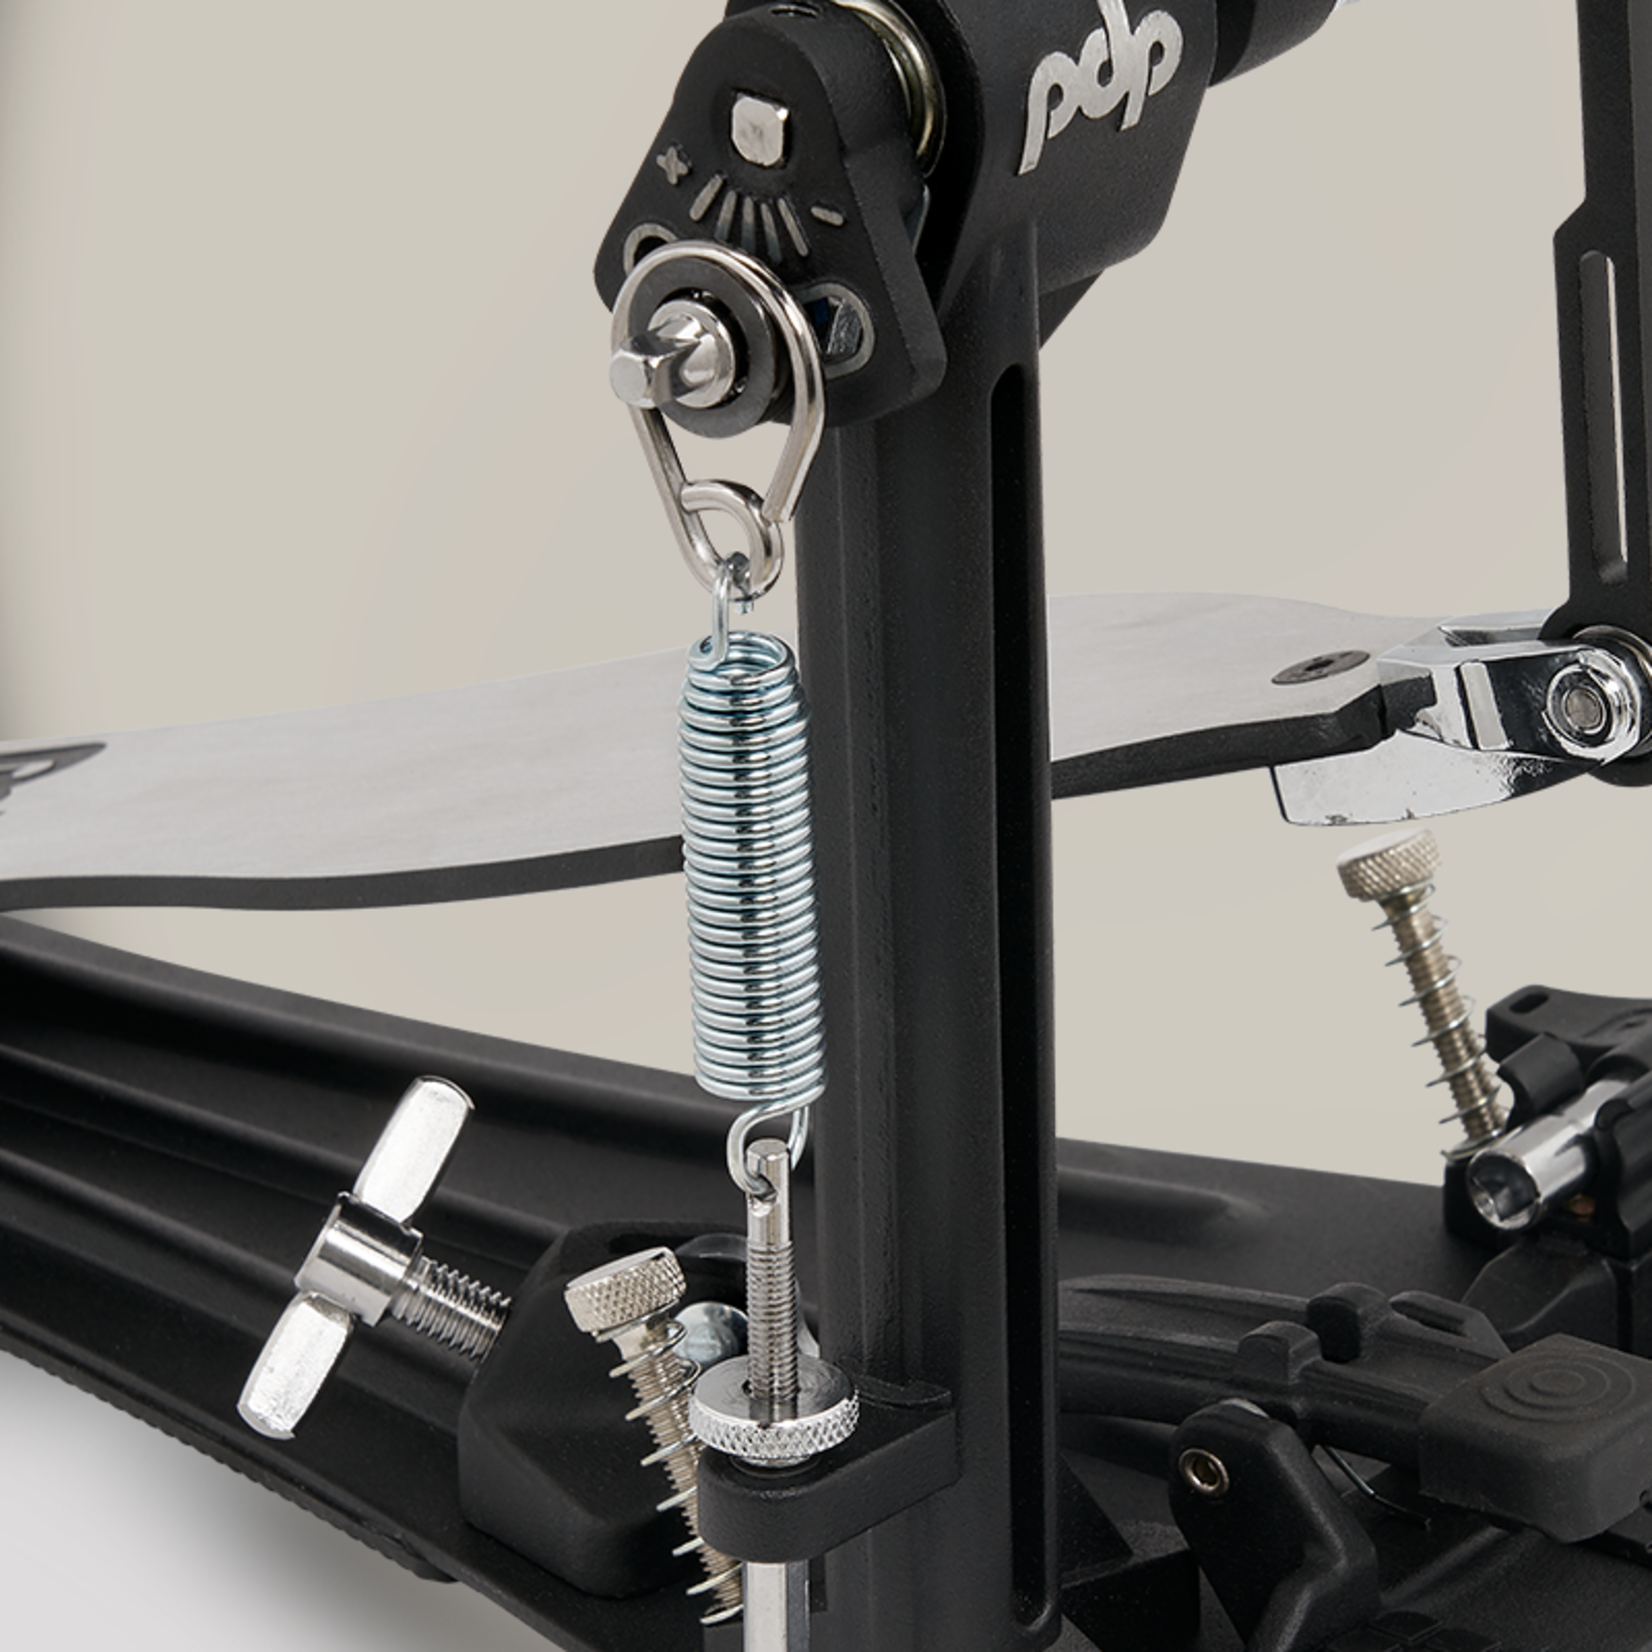 PDP PDP CONCEPT DIRECT DRIVE SINGLE PEDAL PDSPCOD